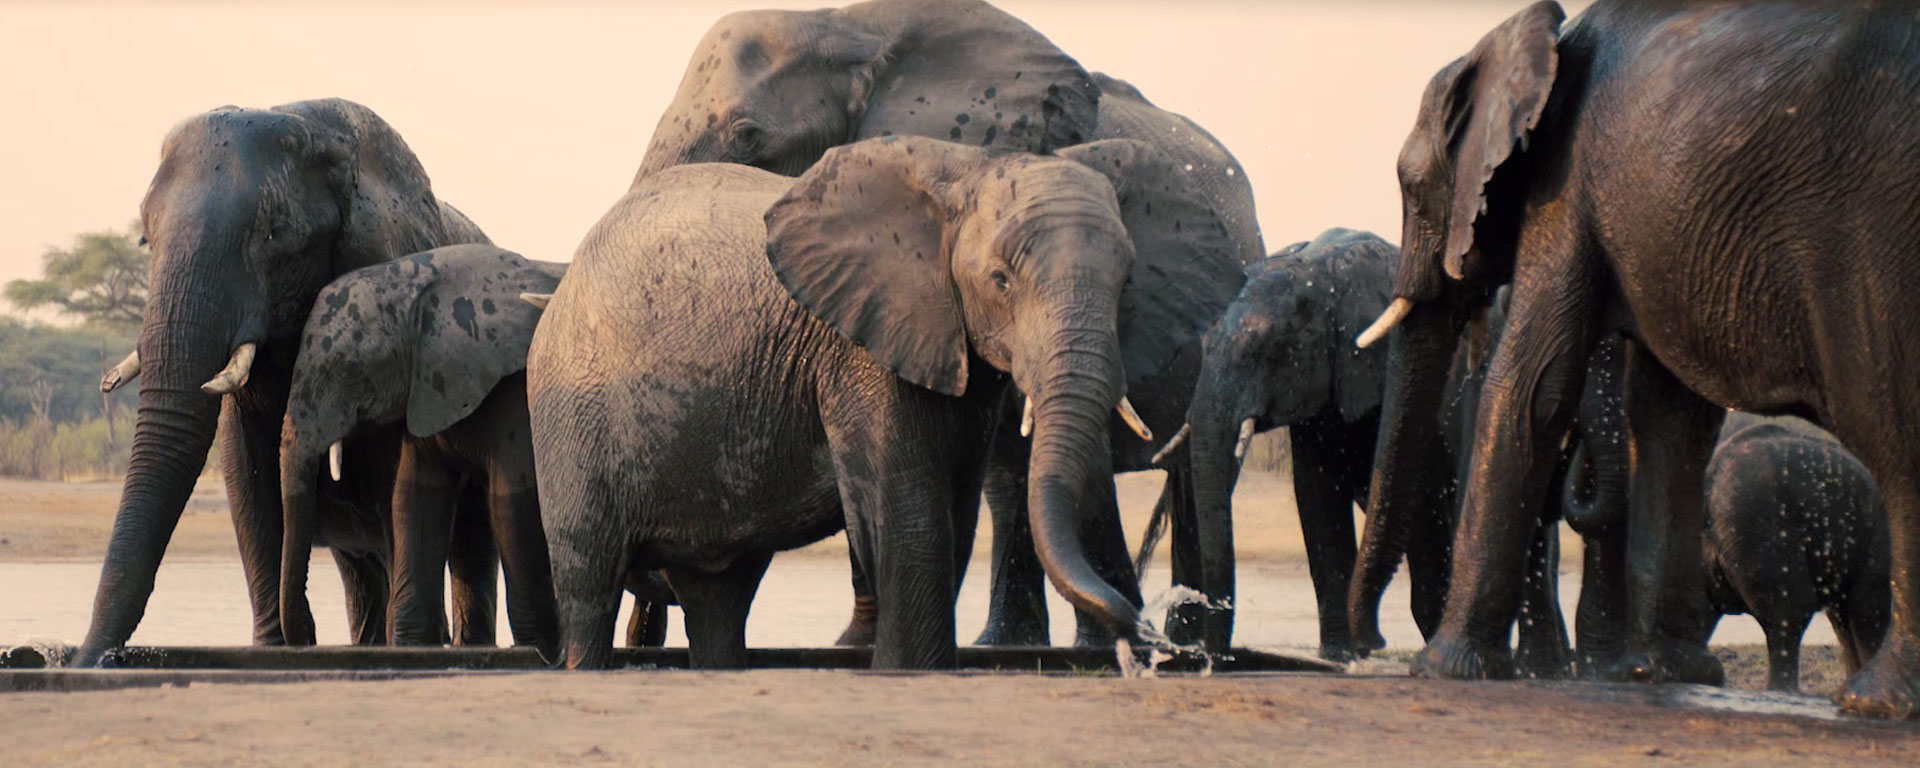 Best African Safari Tours Our Top Picks With Inspiring Photos - 10 best safaris in africa